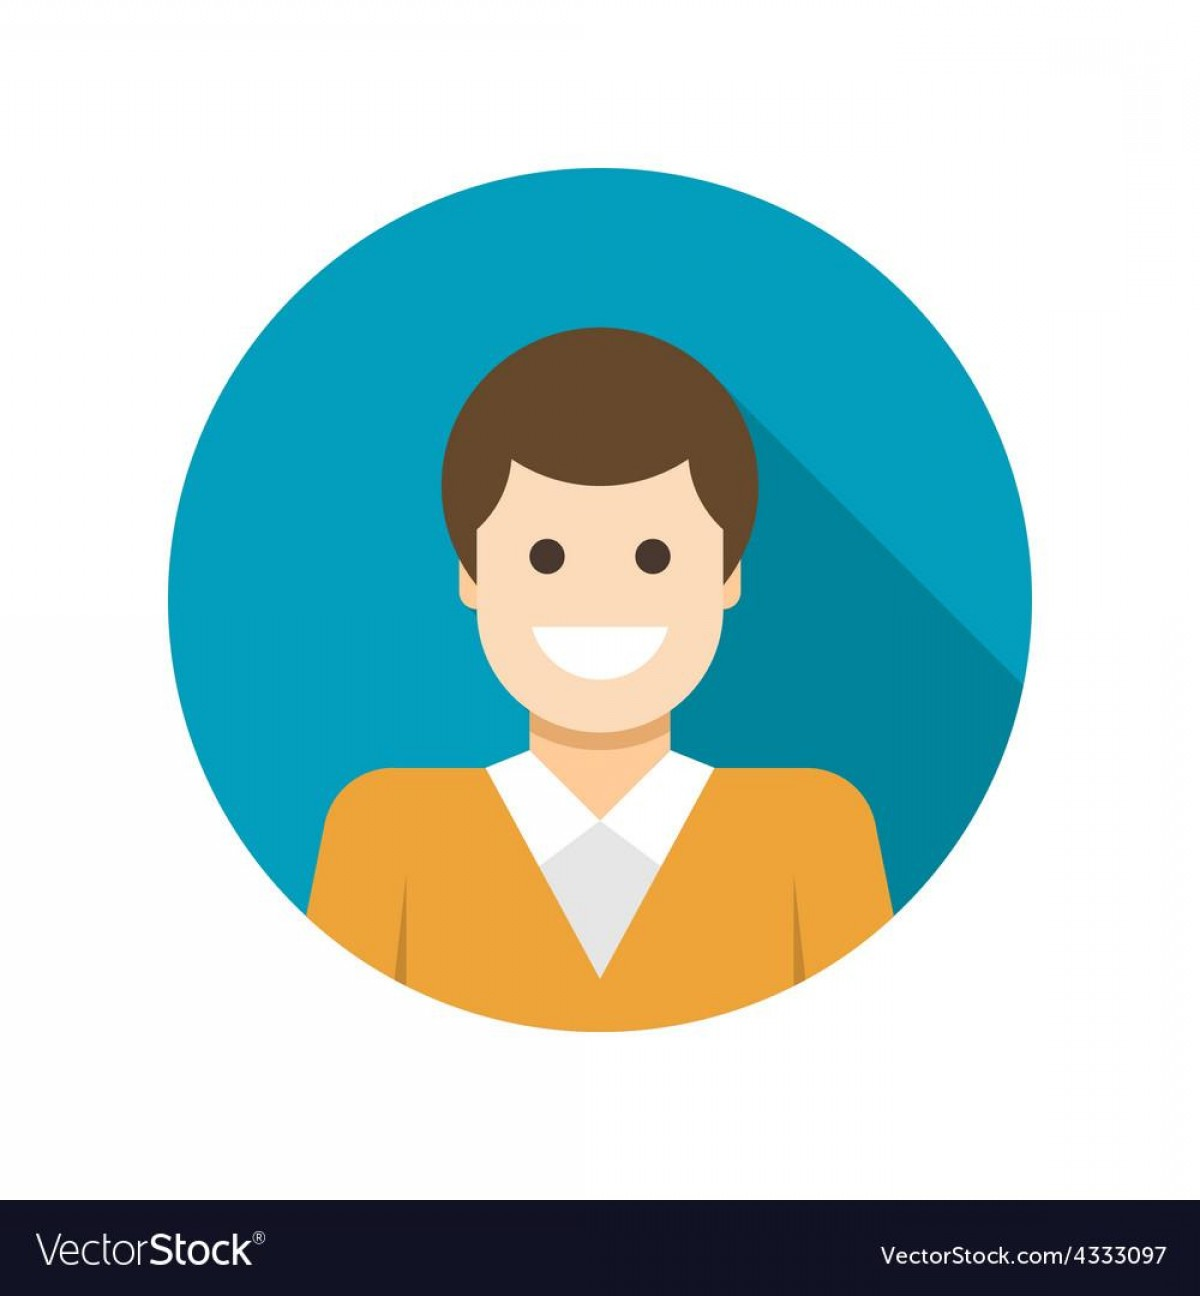 User Icon Vector Free: Best Hd Business Avatar Icons Male Vector Drawing